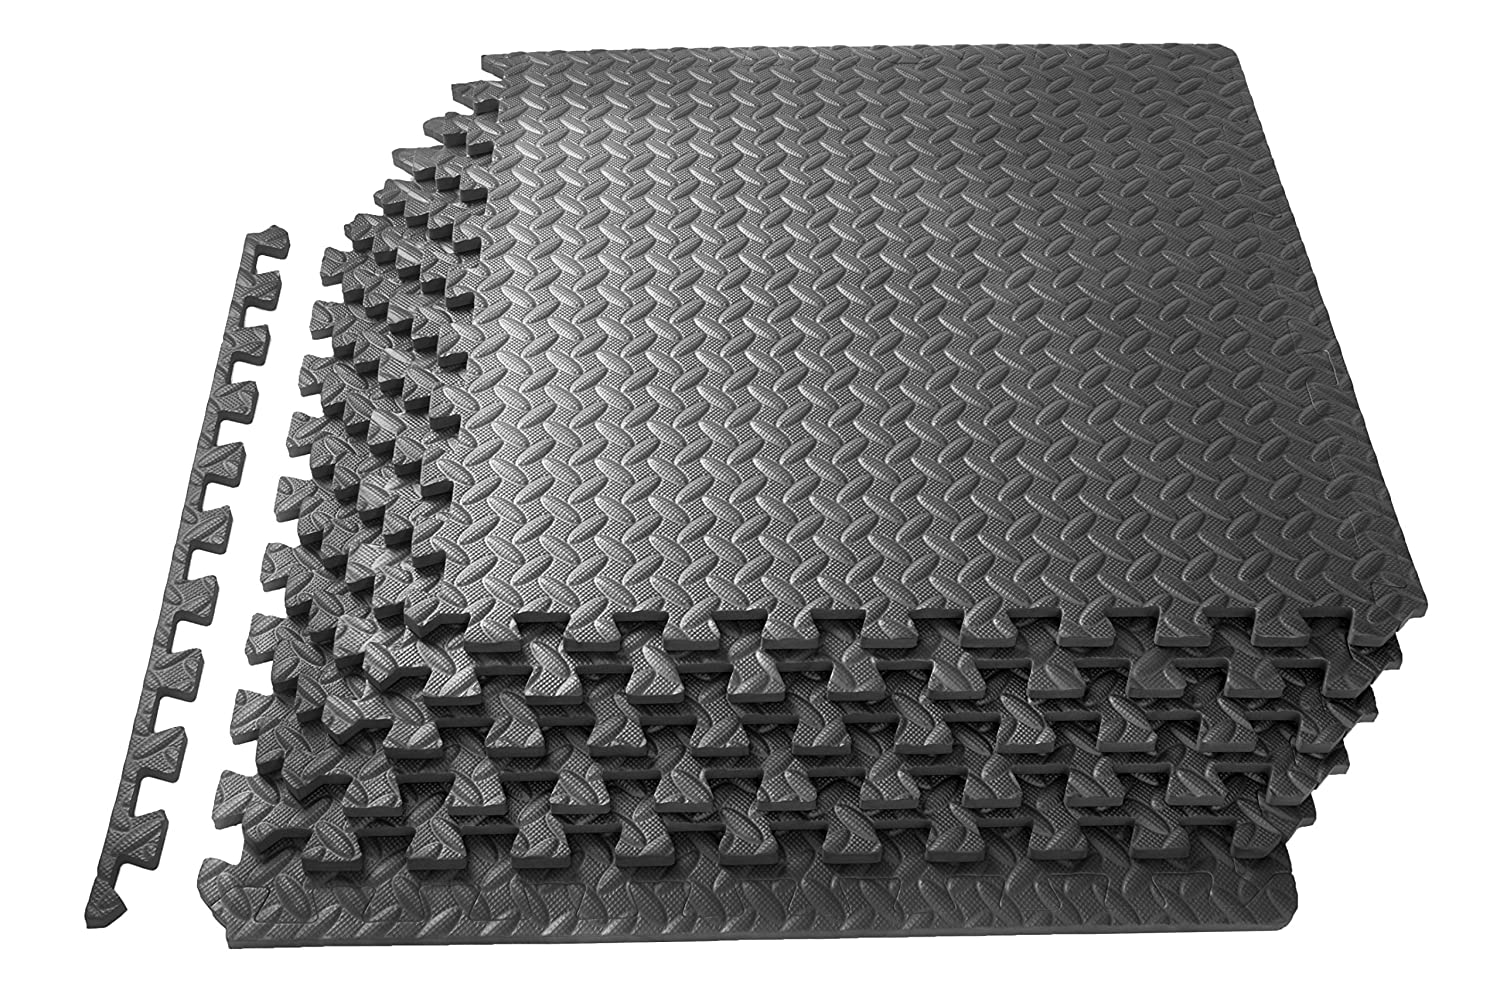 layers of black exercise mats